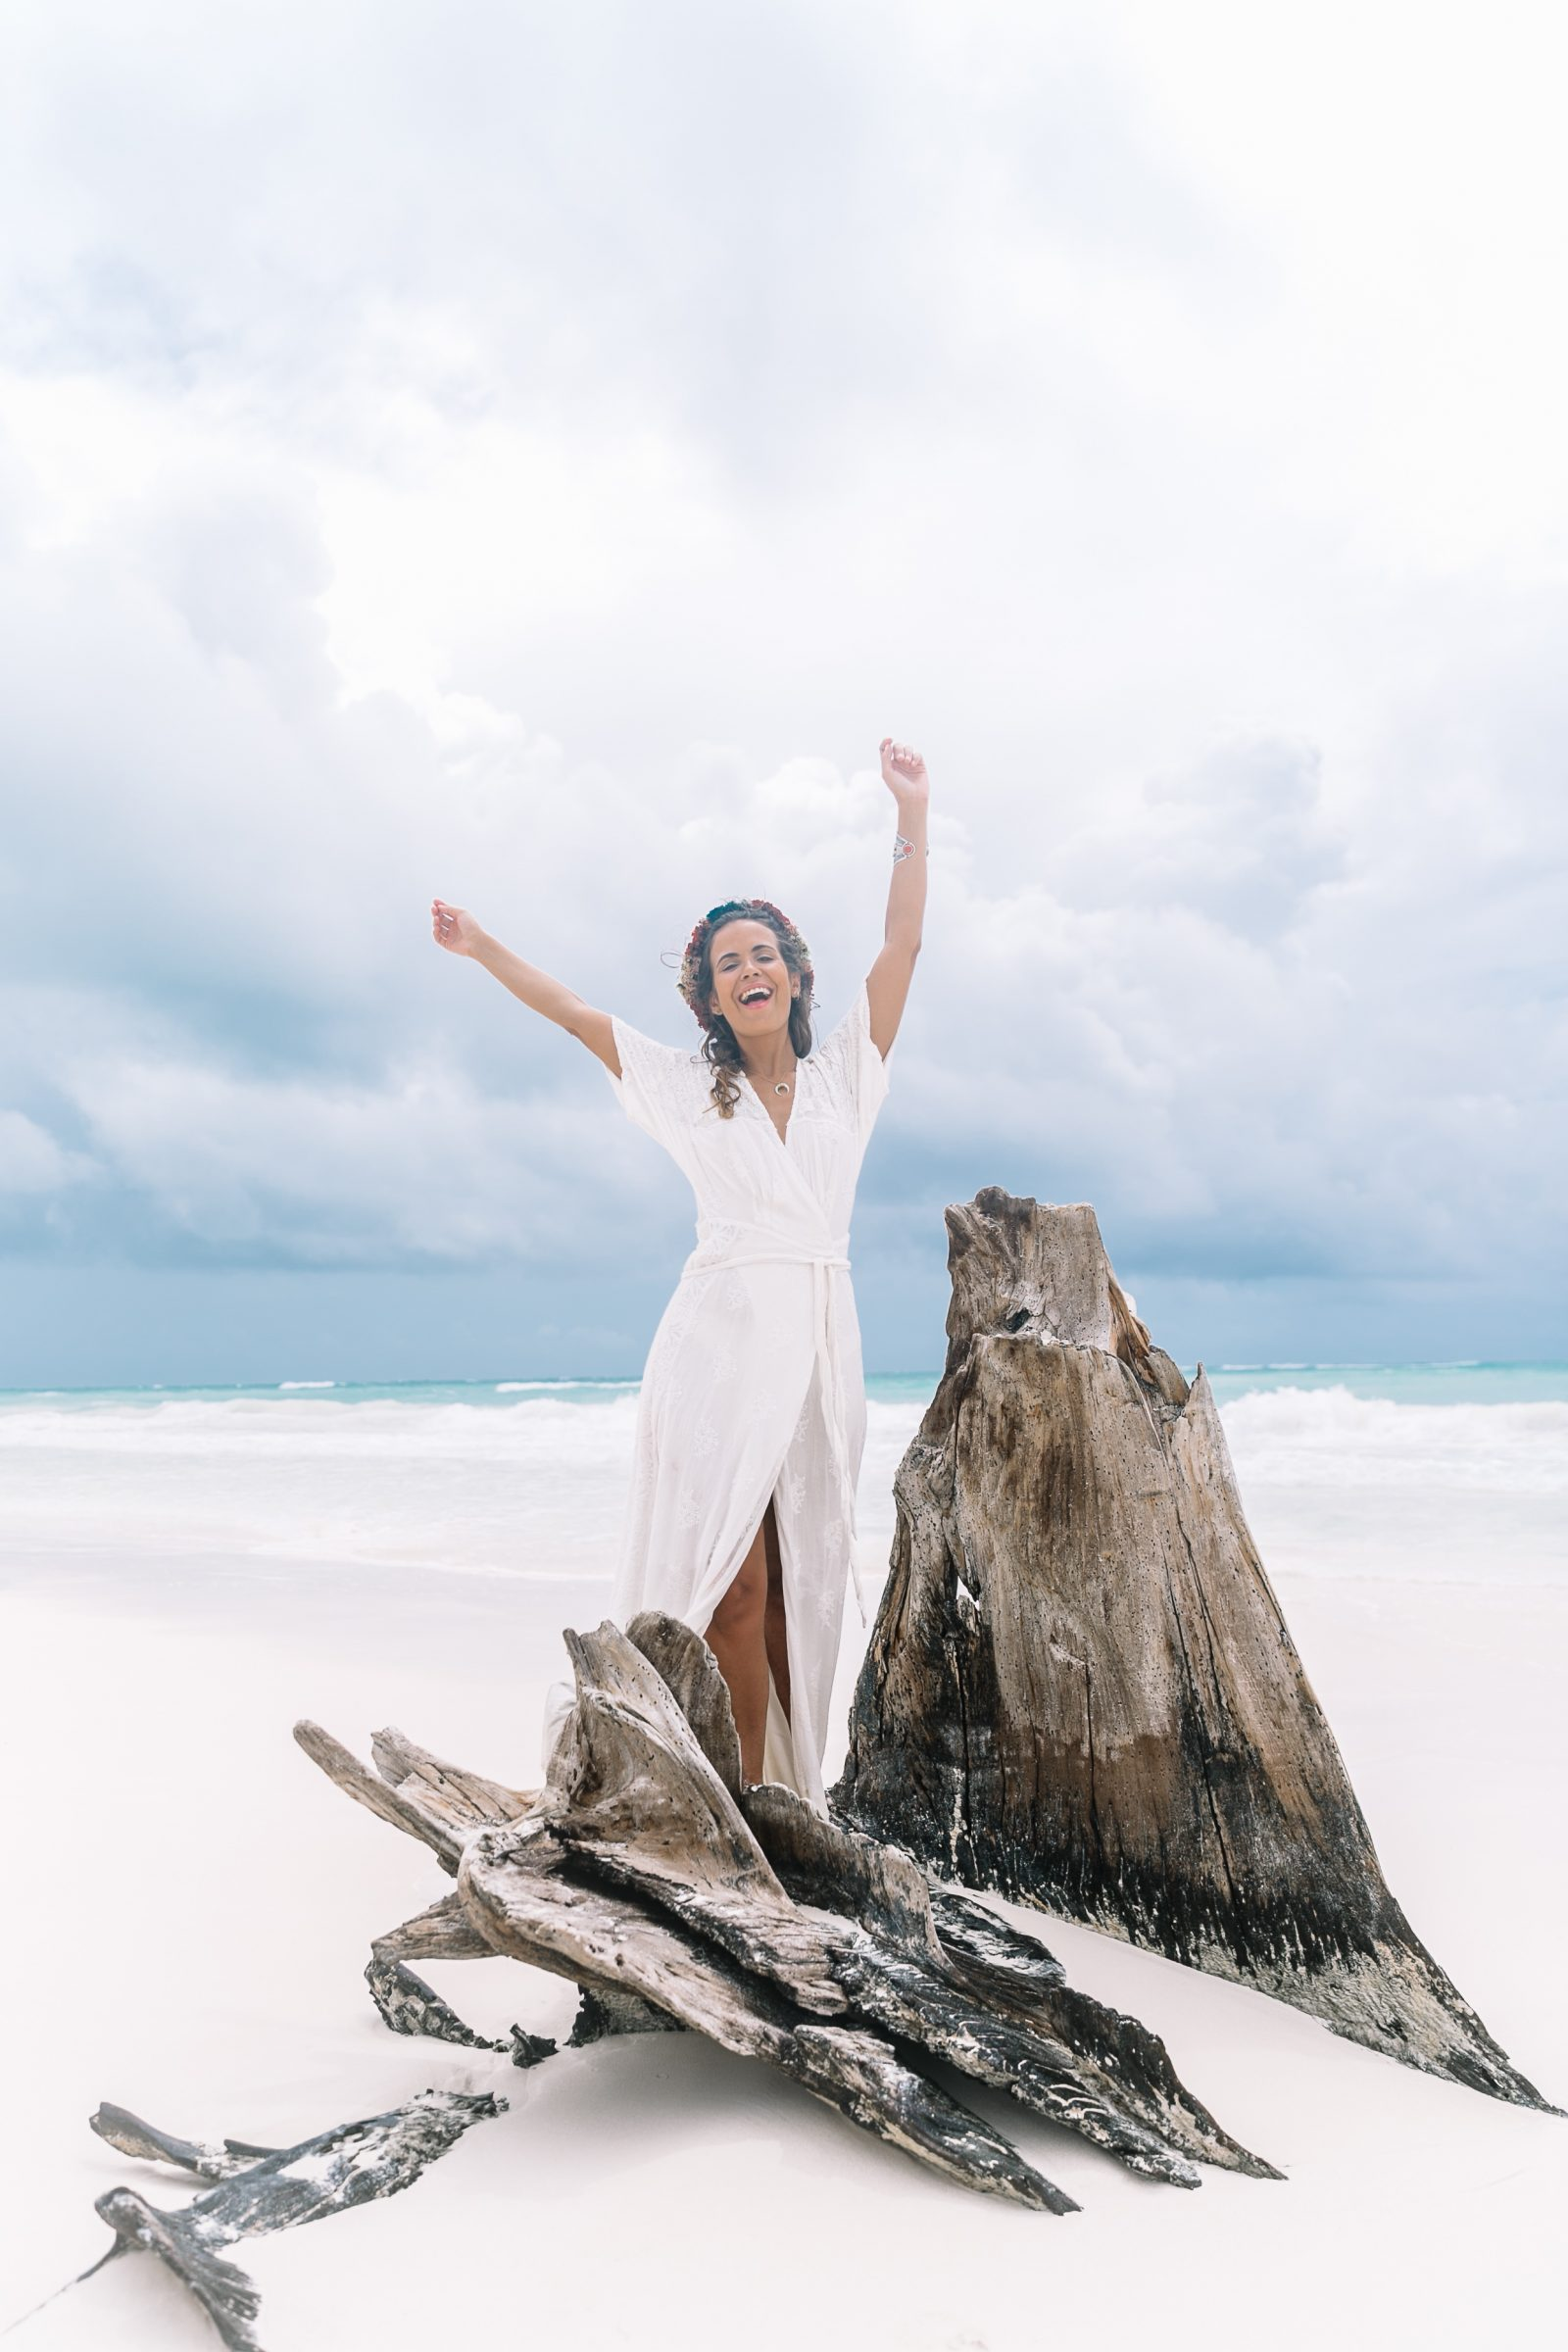 white_long_dress-boho_style-tulum_mexico-beach-floral_crown-outfit-collage_vintage-74